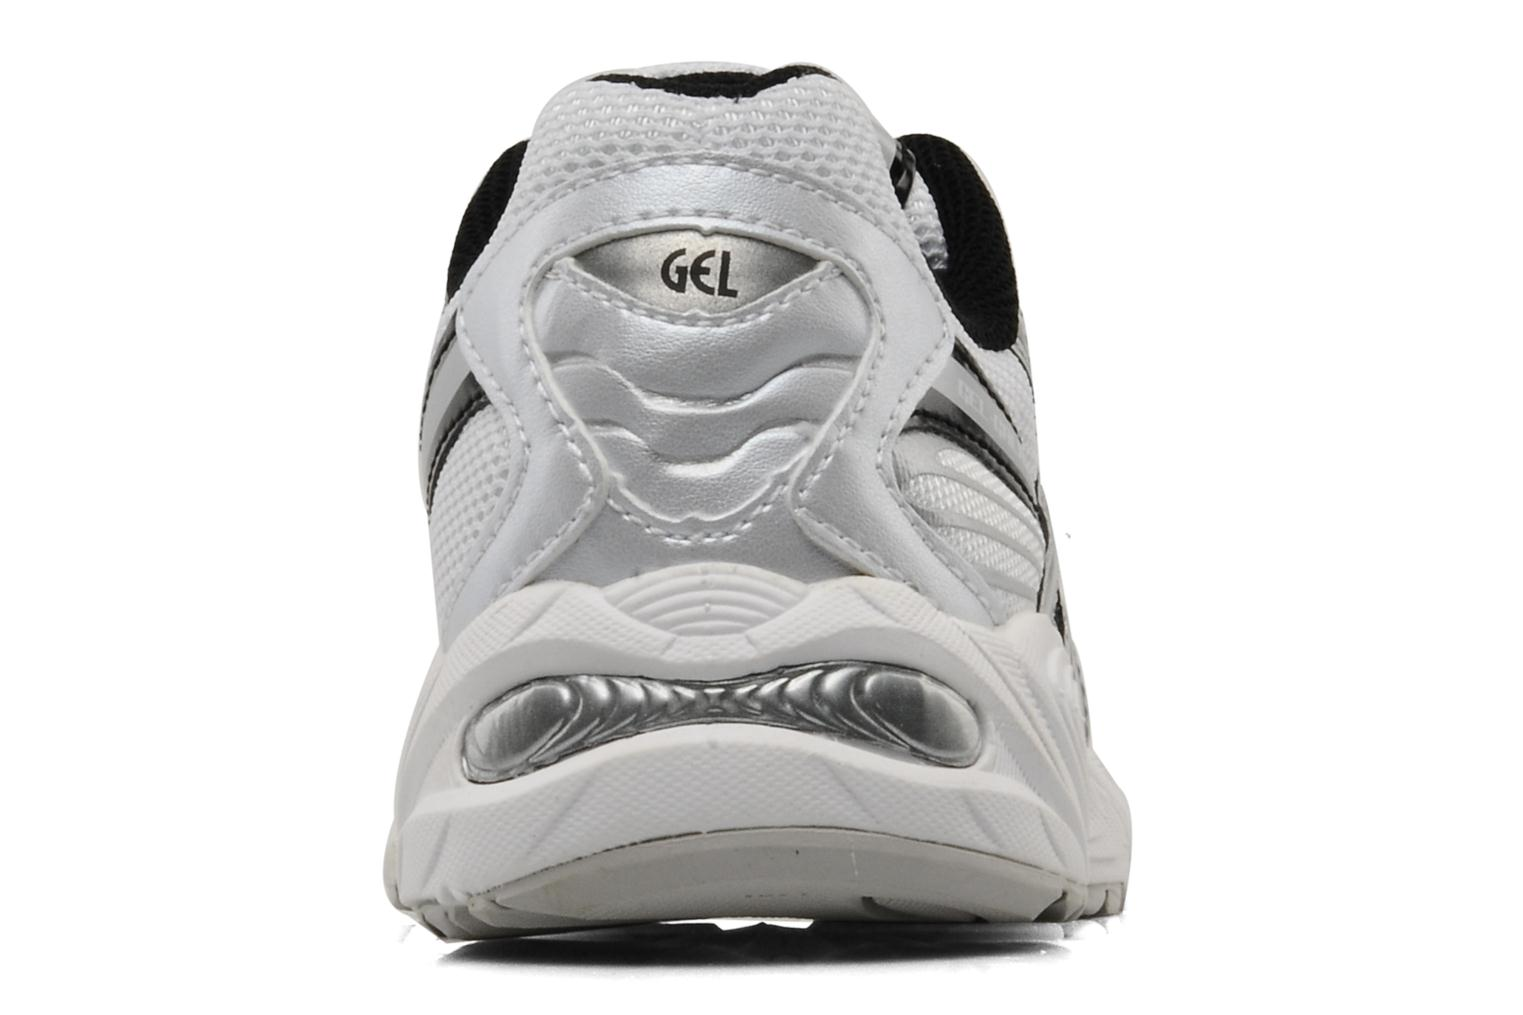 Gel Galaxy 5 GS White/Black/Lightning